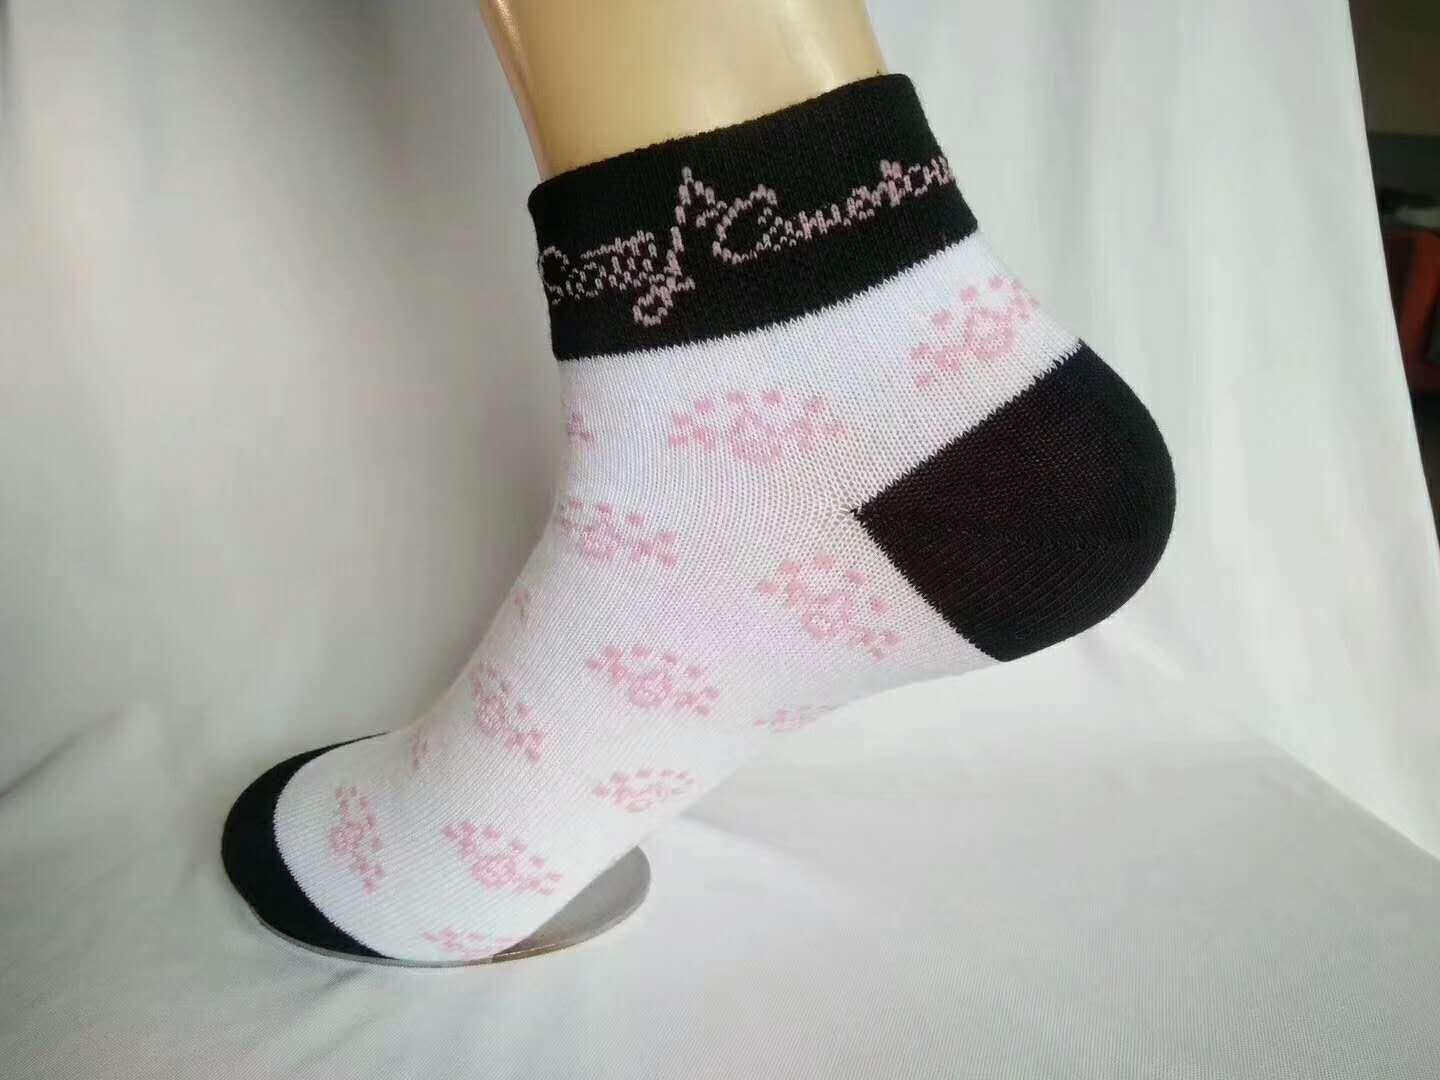 Scotty Cameron women's socks -Pink